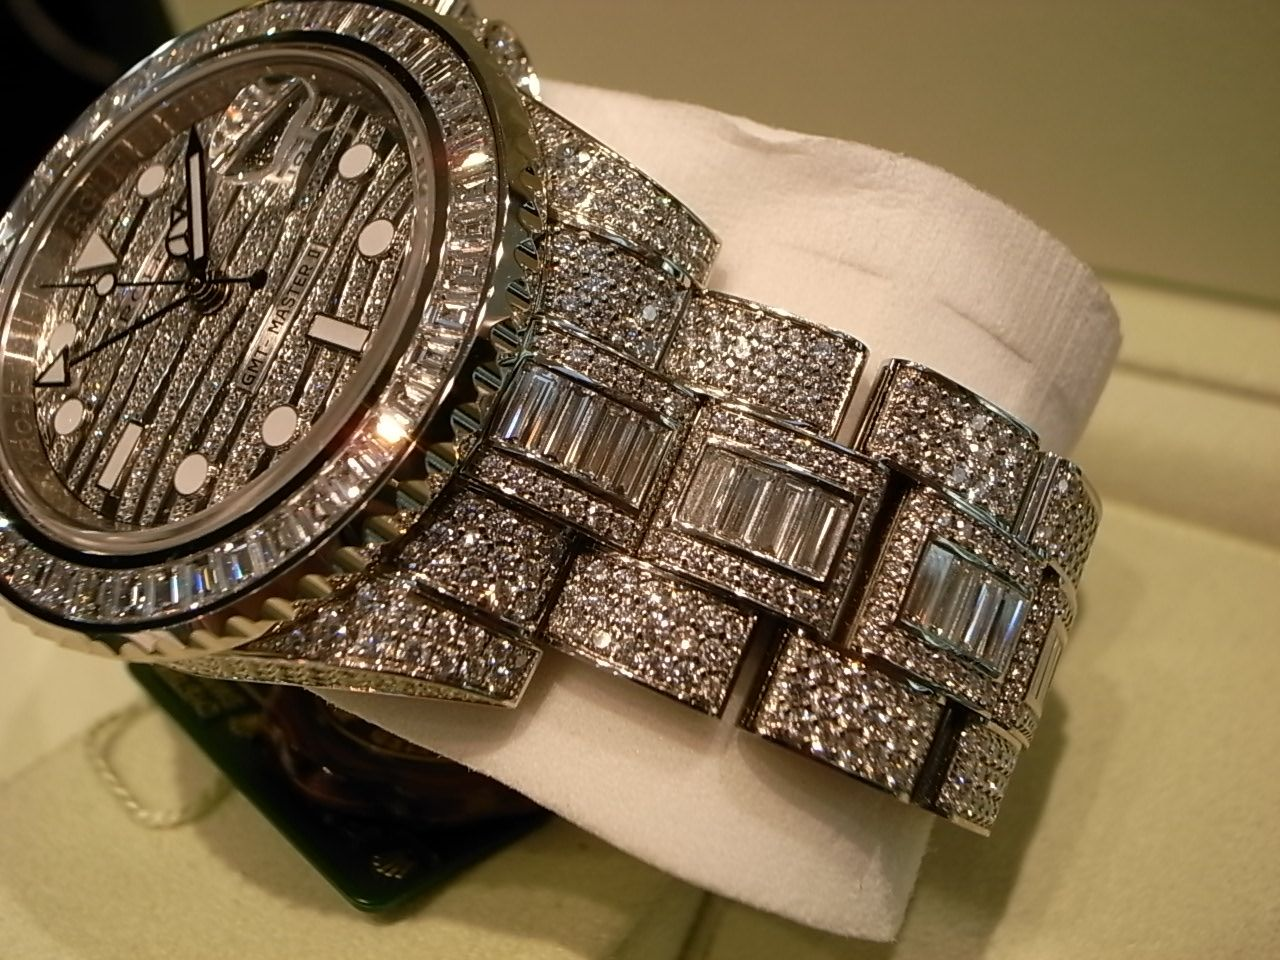 25 most expensive rolex watches in the world expensive watches 25 most expensive rolex watches in the world